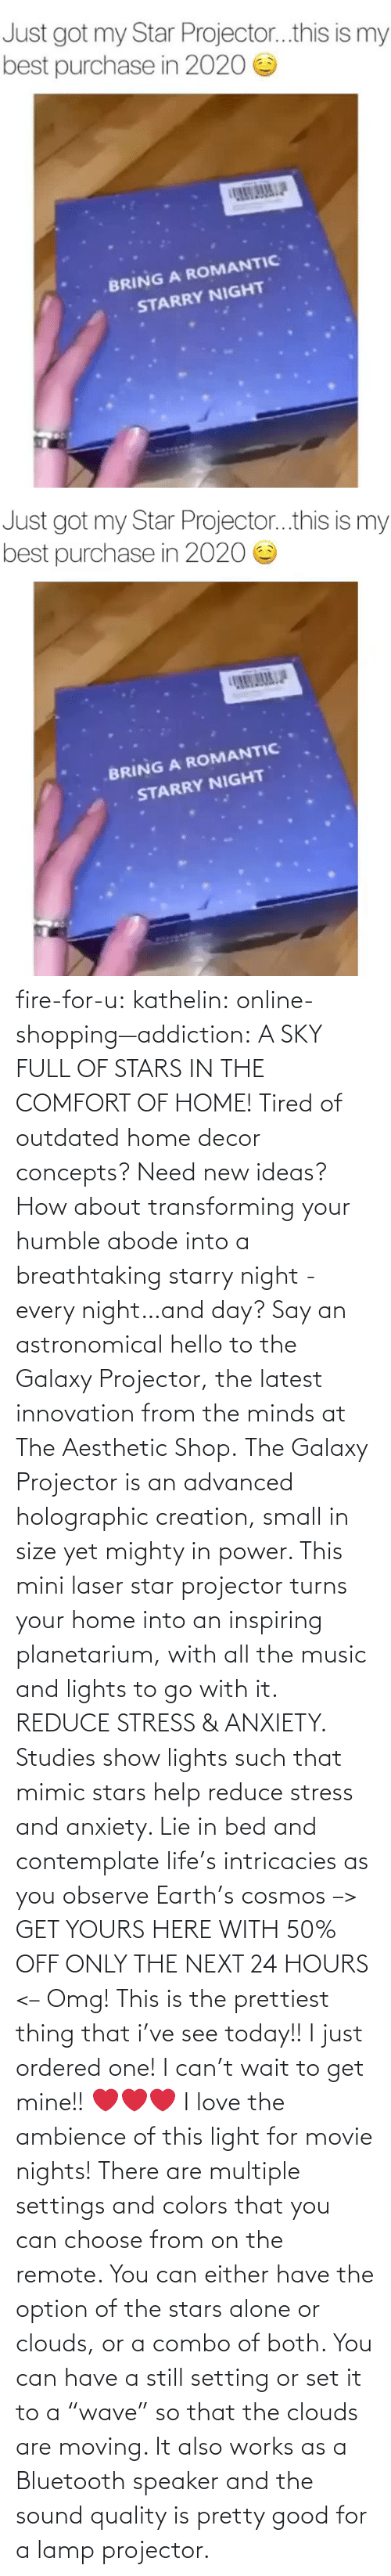 "Music: fire-for-u:  kathelin: online-shopping—addiction:  A SKY FULL OF STARS IN THE COMFORT OF HOME! Tired of outdated home decor concepts? Need new ideas? How about transforming your humble abode into a breathtaking starry night - every night…and day? Say an astronomical hello to the Galaxy Projector, the latest innovation from the minds at The Aesthetic Shop. The Galaxy Projector is an advanced holographic creation, small in size yet mighty in power. This mini laser star projector turns your home into an inspiring planetarium, with all the music and lights to go with it. REDUCE STRESS & ANXIETY. Studies show lights such that mimic stars help reduce stress and anxiety. Lie in bed and contemplate life's intricacies as you observe Earth's cosmos  –> GET YOURS HERE WITH 50% OFF ONLY THE NEXT 24 HOURS <–   Omg! This is the prettiest thing that i've see today!! I just ordered one! I can't wait to get mine!! ❤️️❤️️❤️️  I love the ambience of this light for movie nights! There are multiple settings and colors that you can choose from on the remote. You can either have the option of the stars alone or clouds, or a combo of both. You can have a still setting or set it to a ""wave"" so that the clouds are moving. It also works as a Bluetooth speaker and the sound quality is pretty good for a lamp projector."